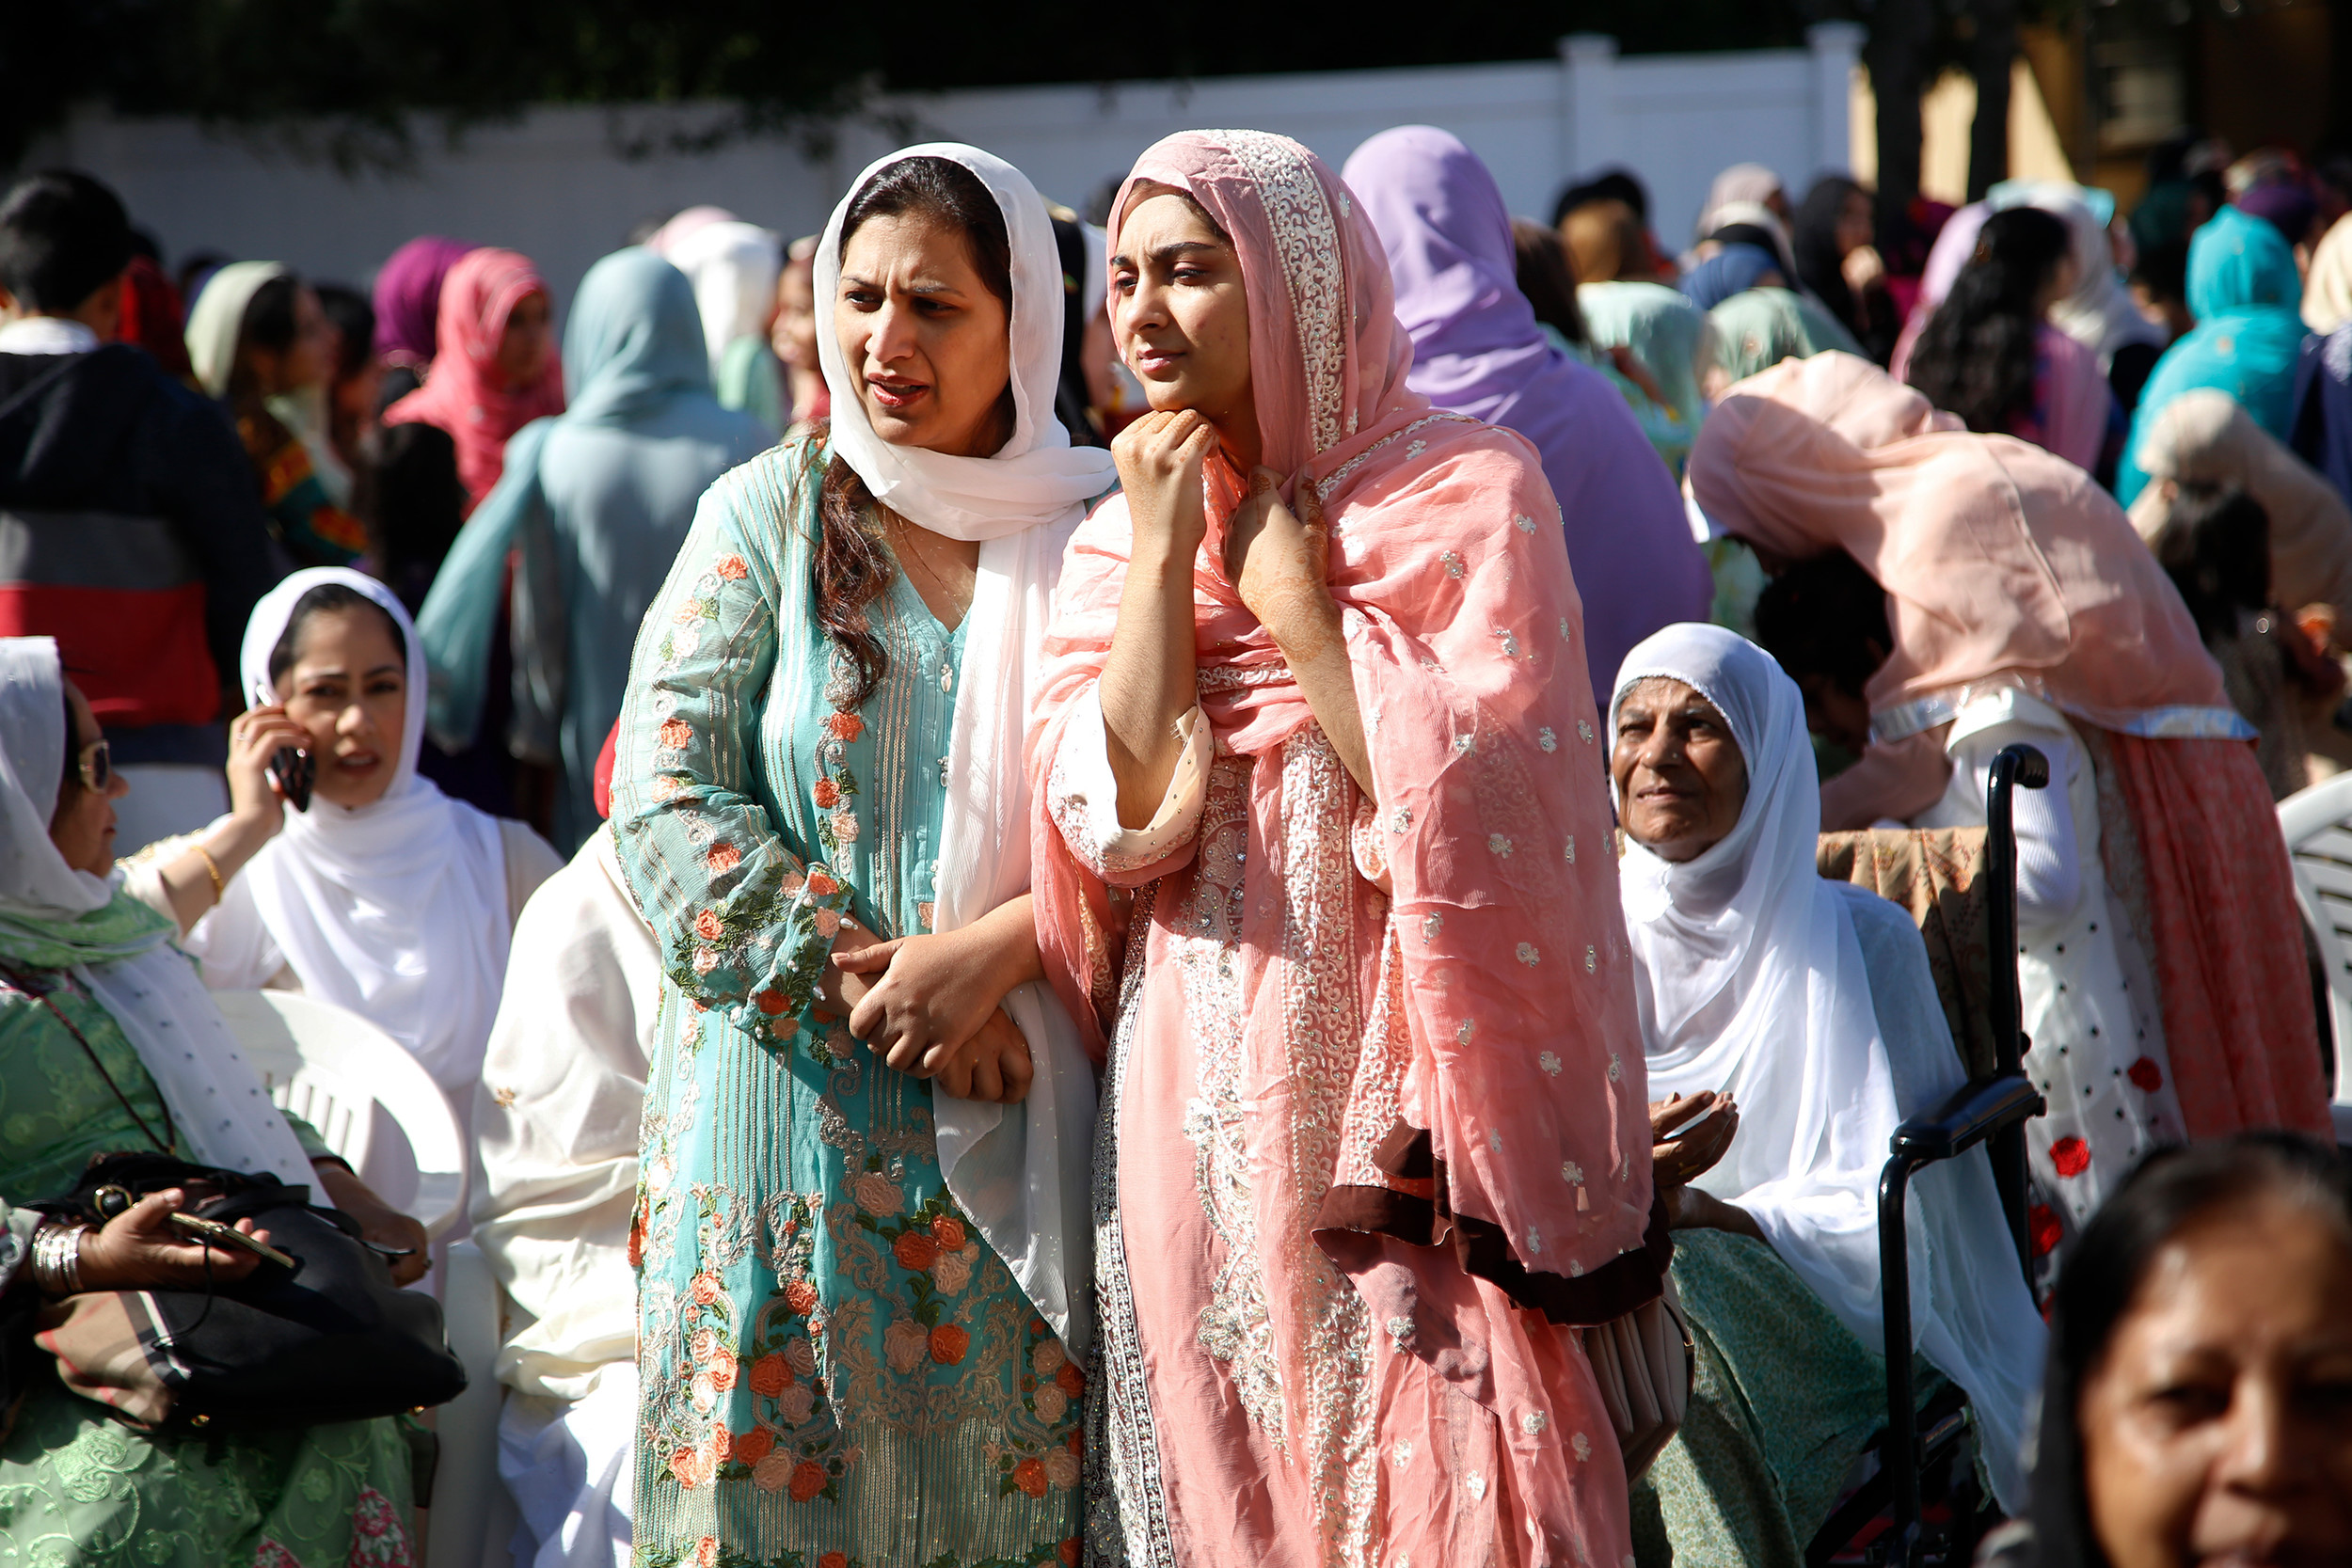 Nazia and Naina Shahid went to the mosque for Eid services.